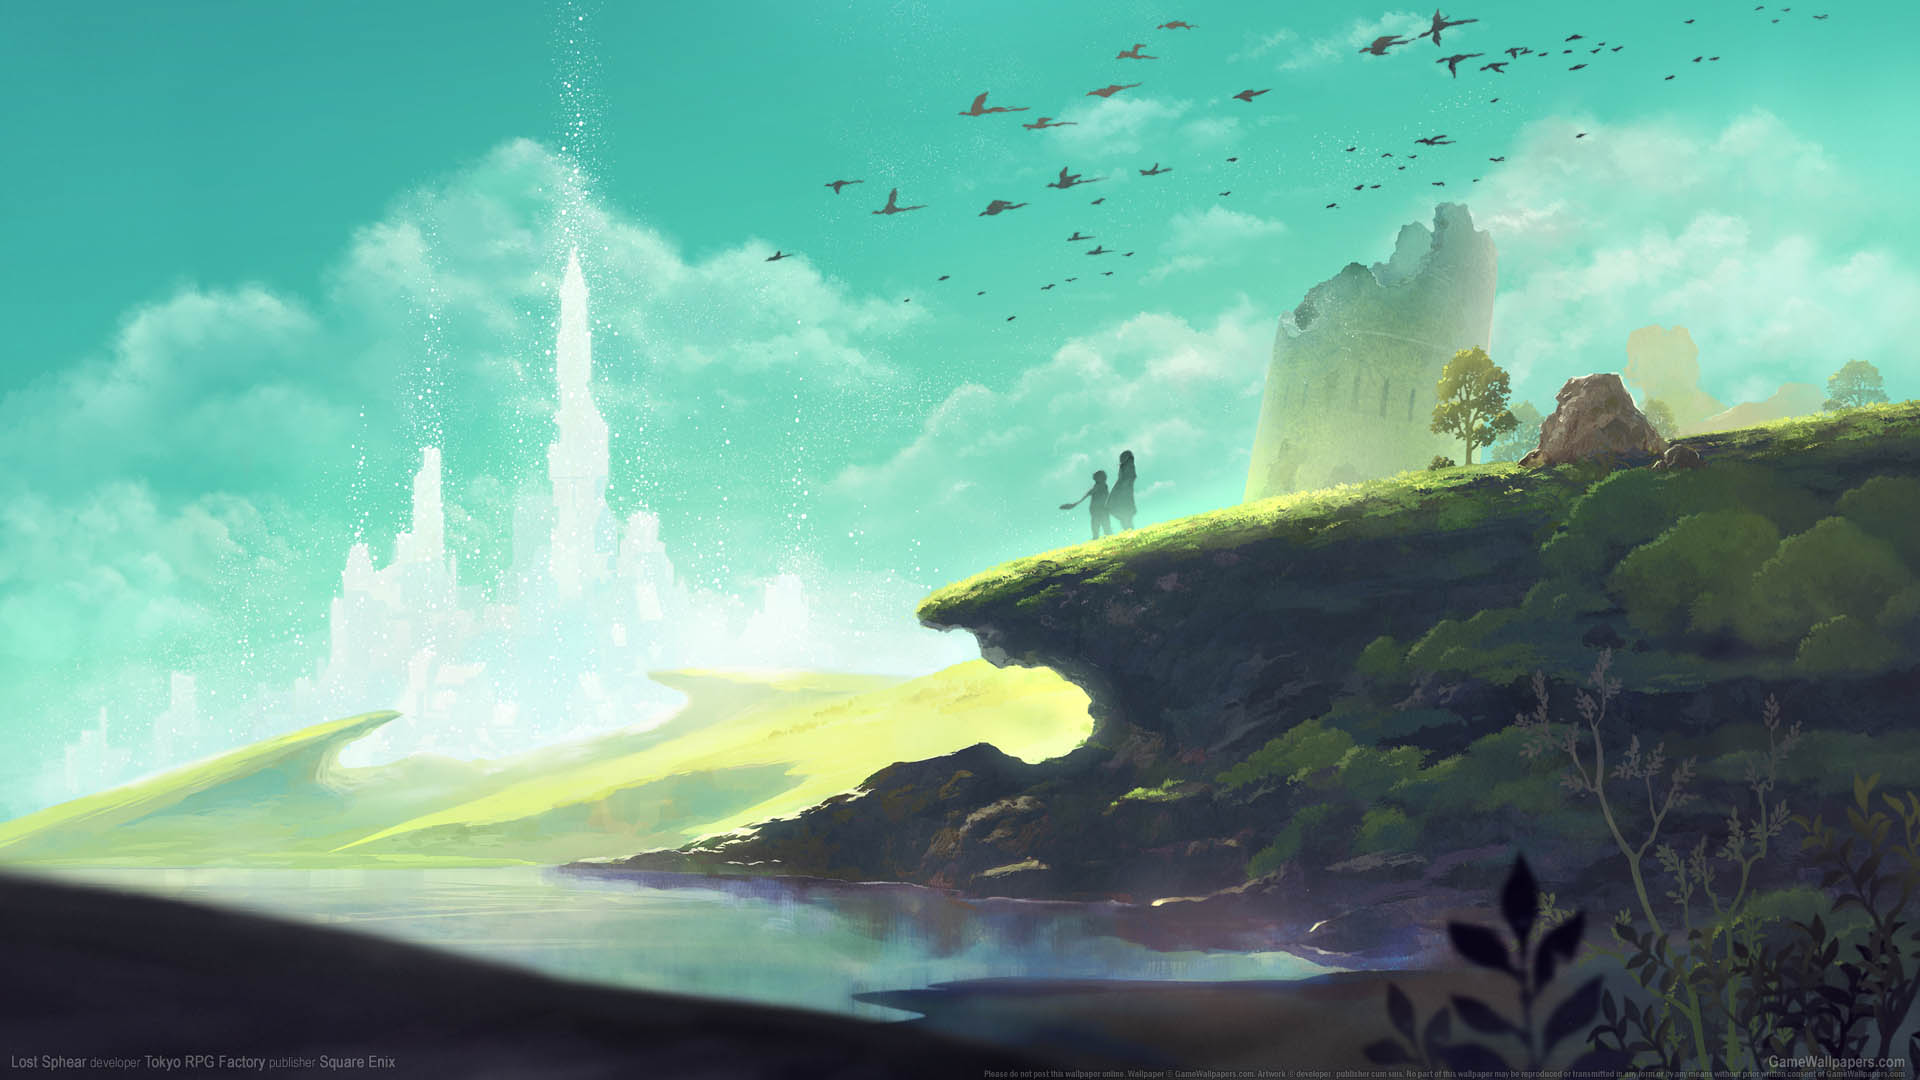 lost sphear wallpaper 01 1920x1080